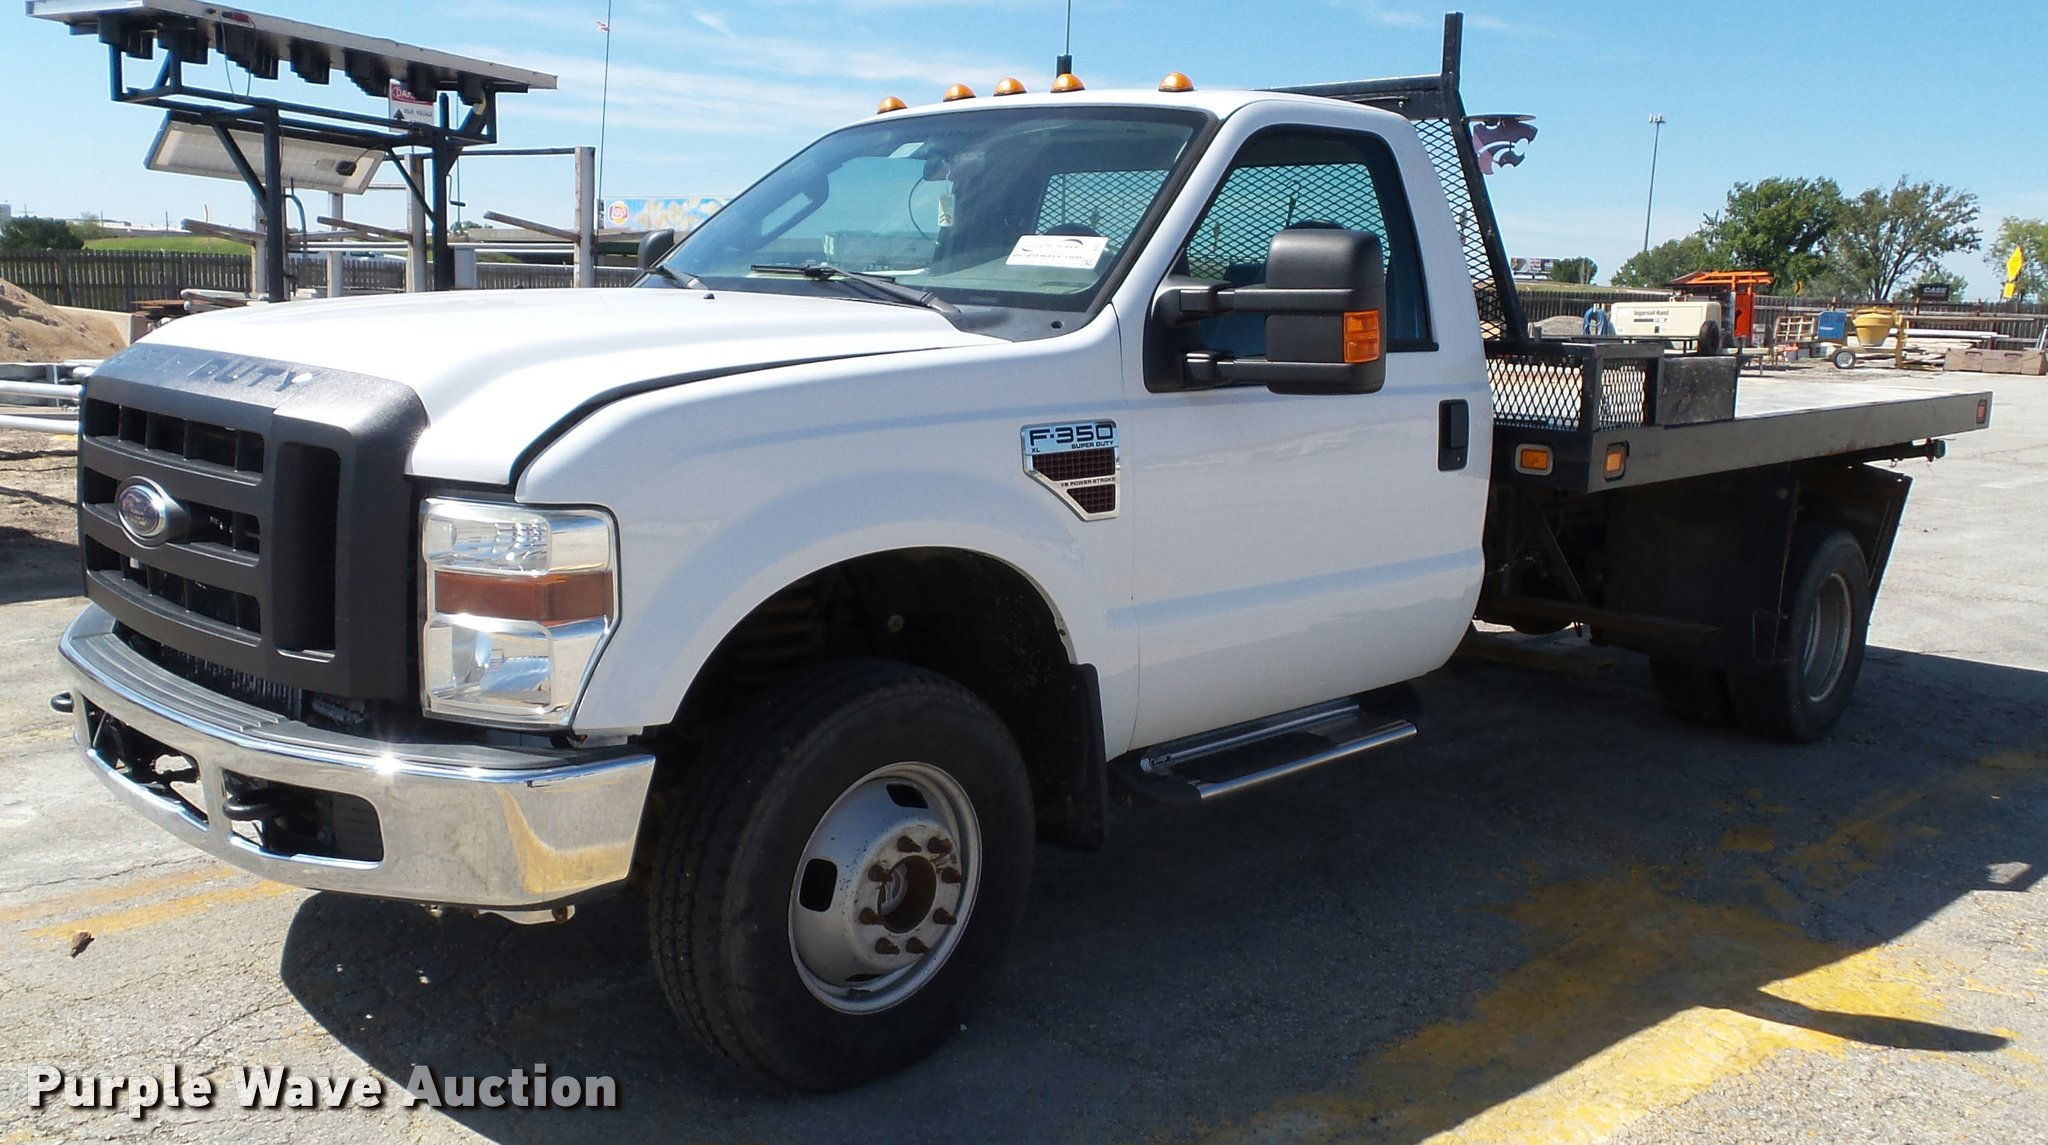 2009 ford f350 super duty xl flatbed pickup truck item j48